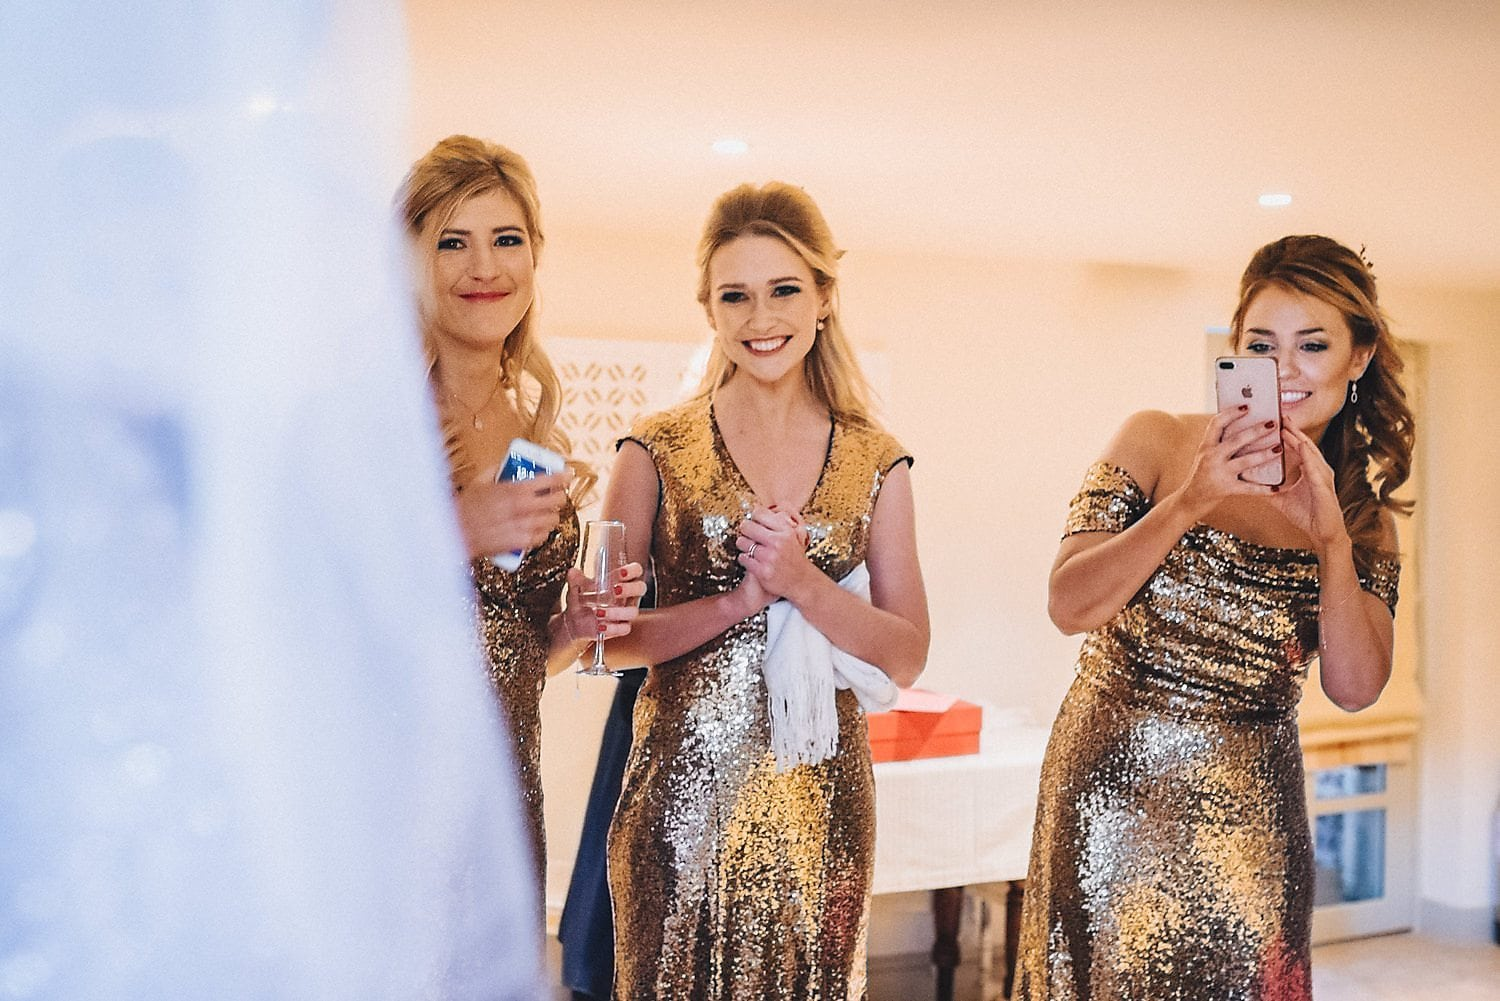 Three bridesmaids wearing gold sequinned dresses get a first look at the bride in her dress